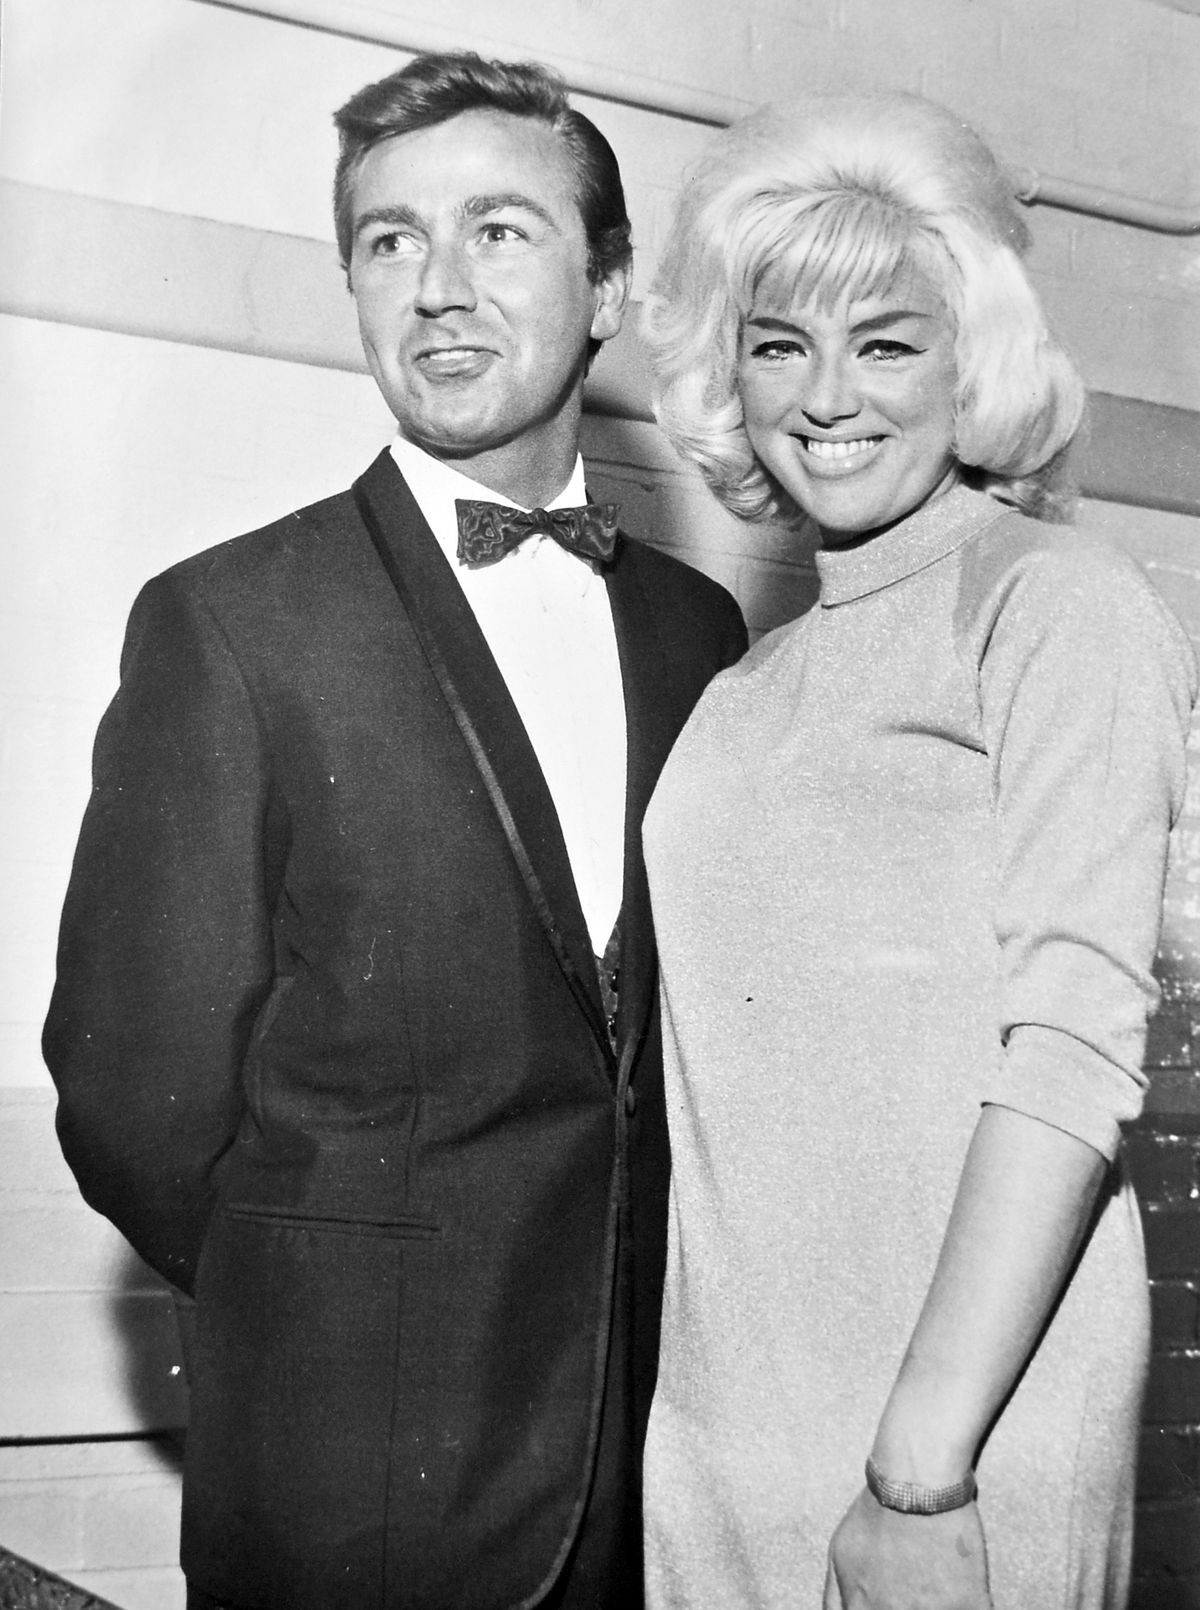 Des and Diana at Hadley, December 12, 1964 – Diana topped the bill but Des outshone her on the night.